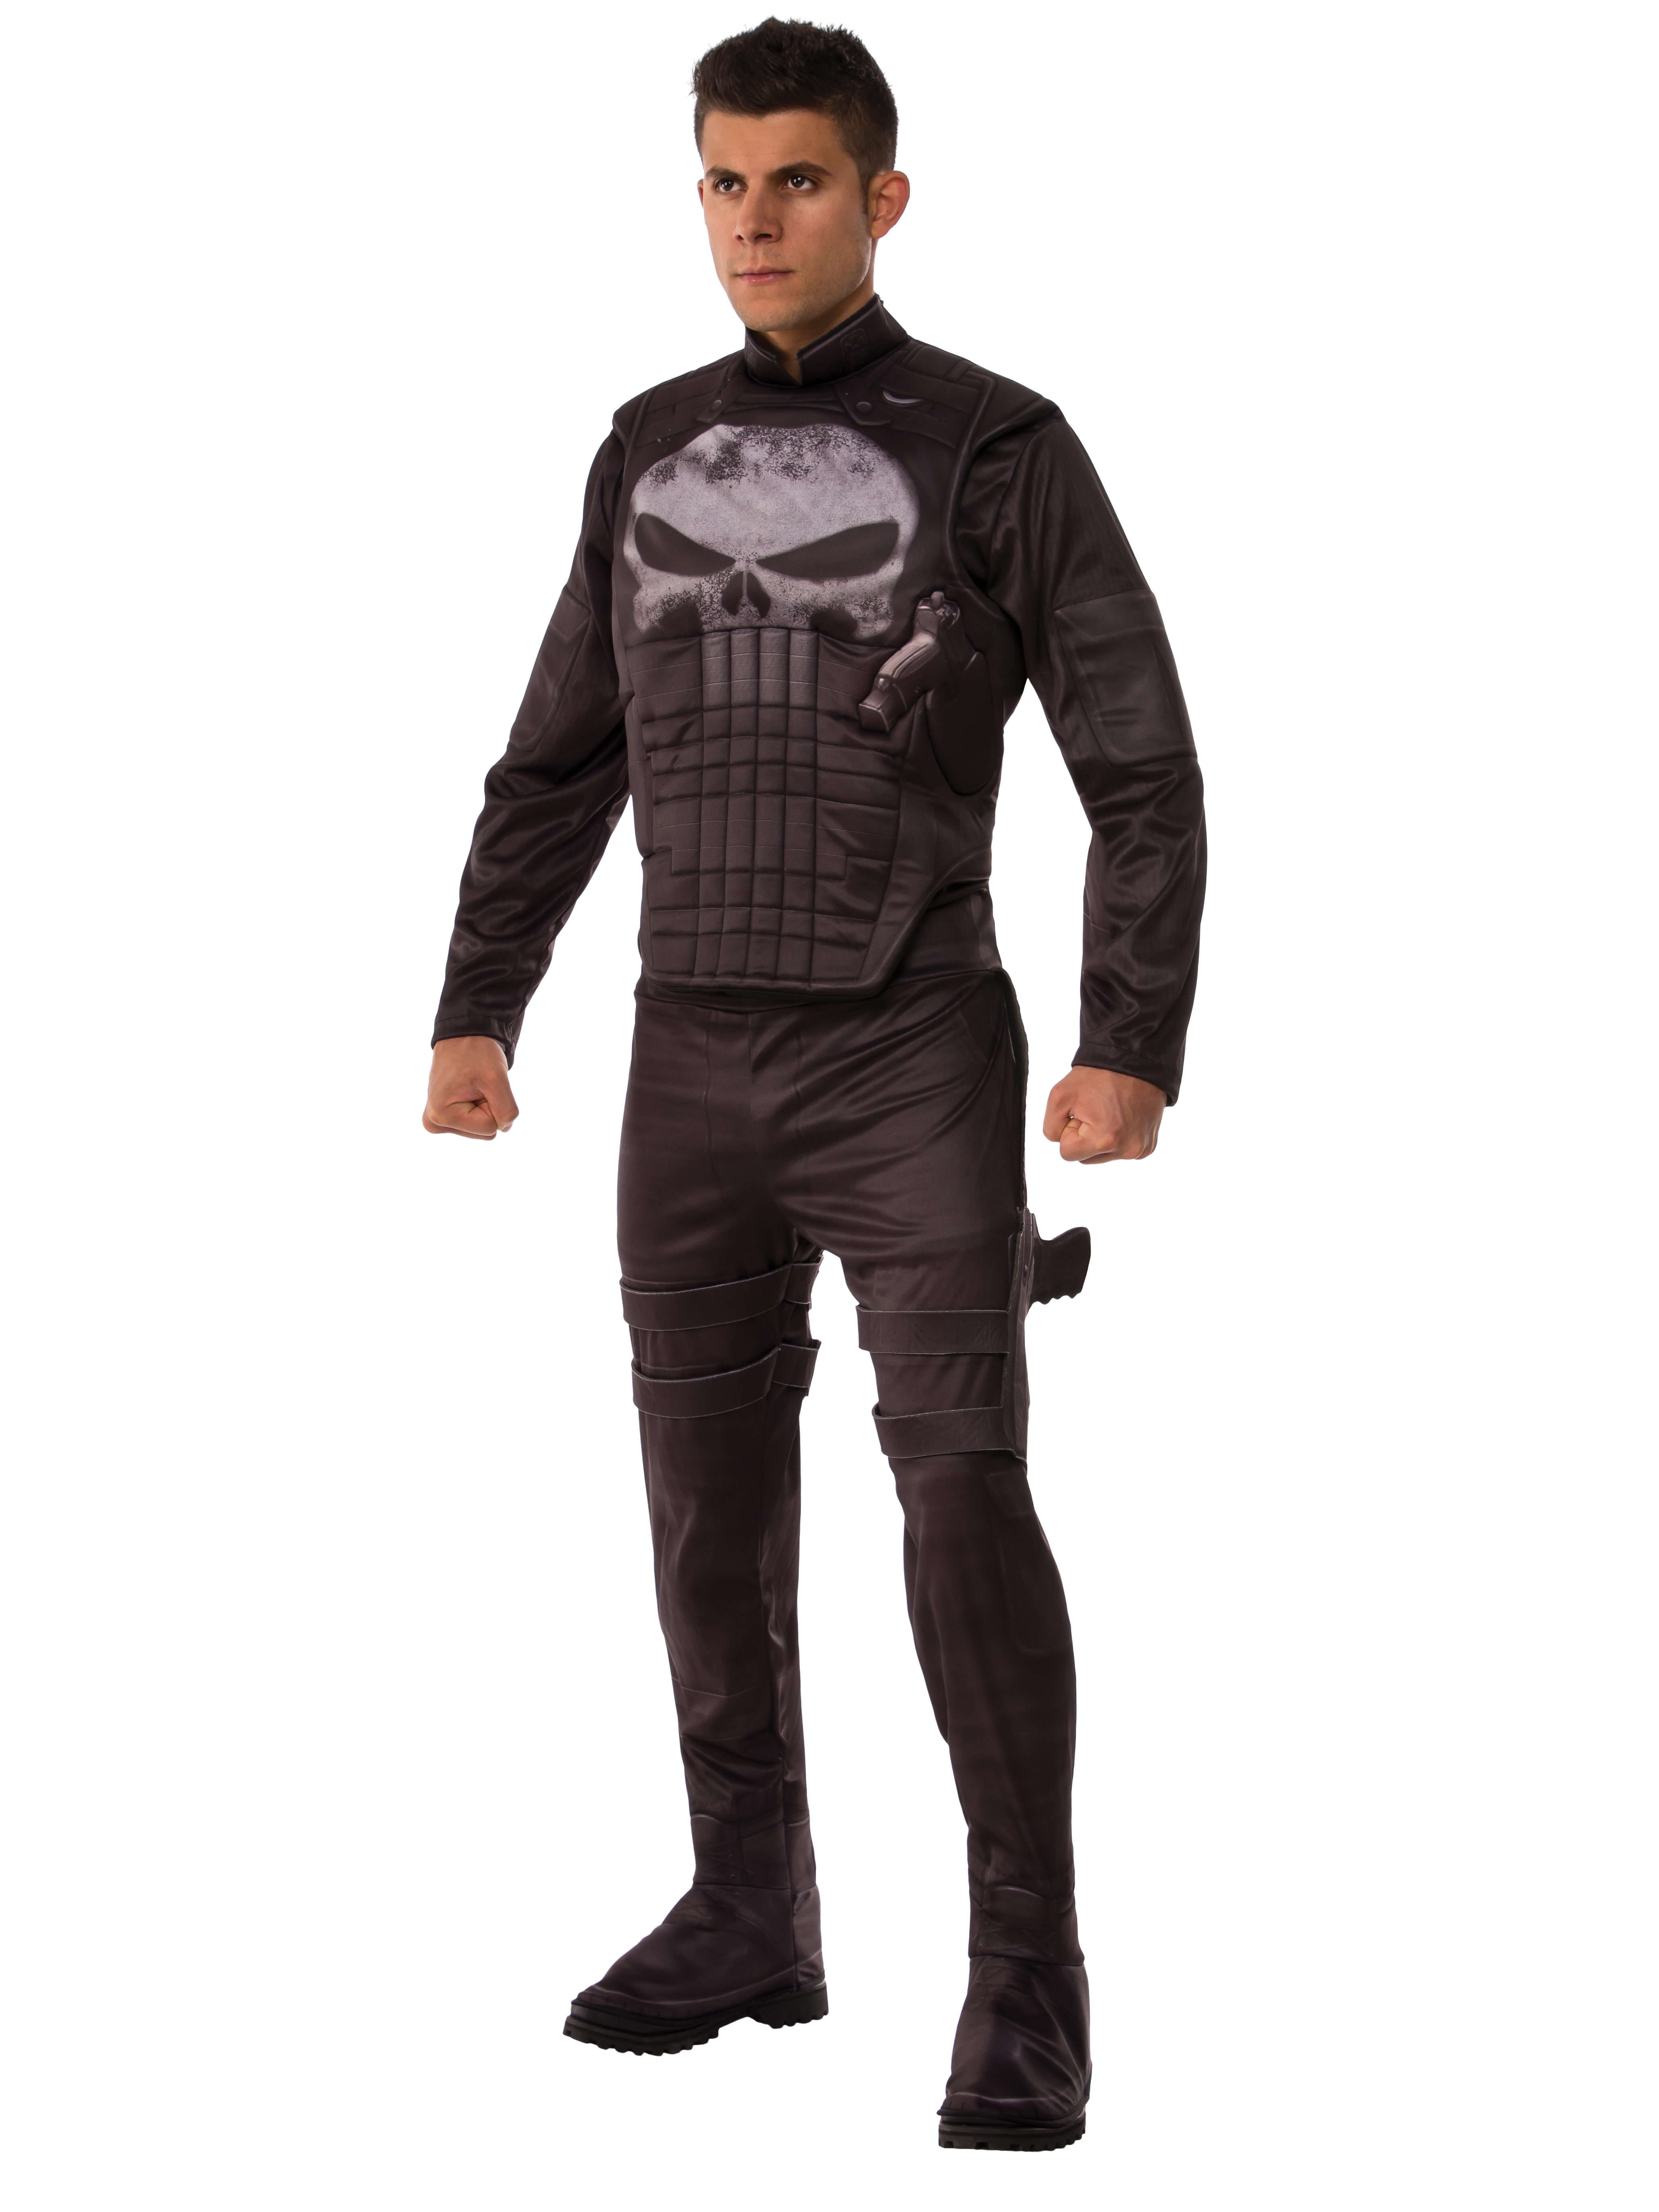 Adult Marvel Deluxe Punisher Costume